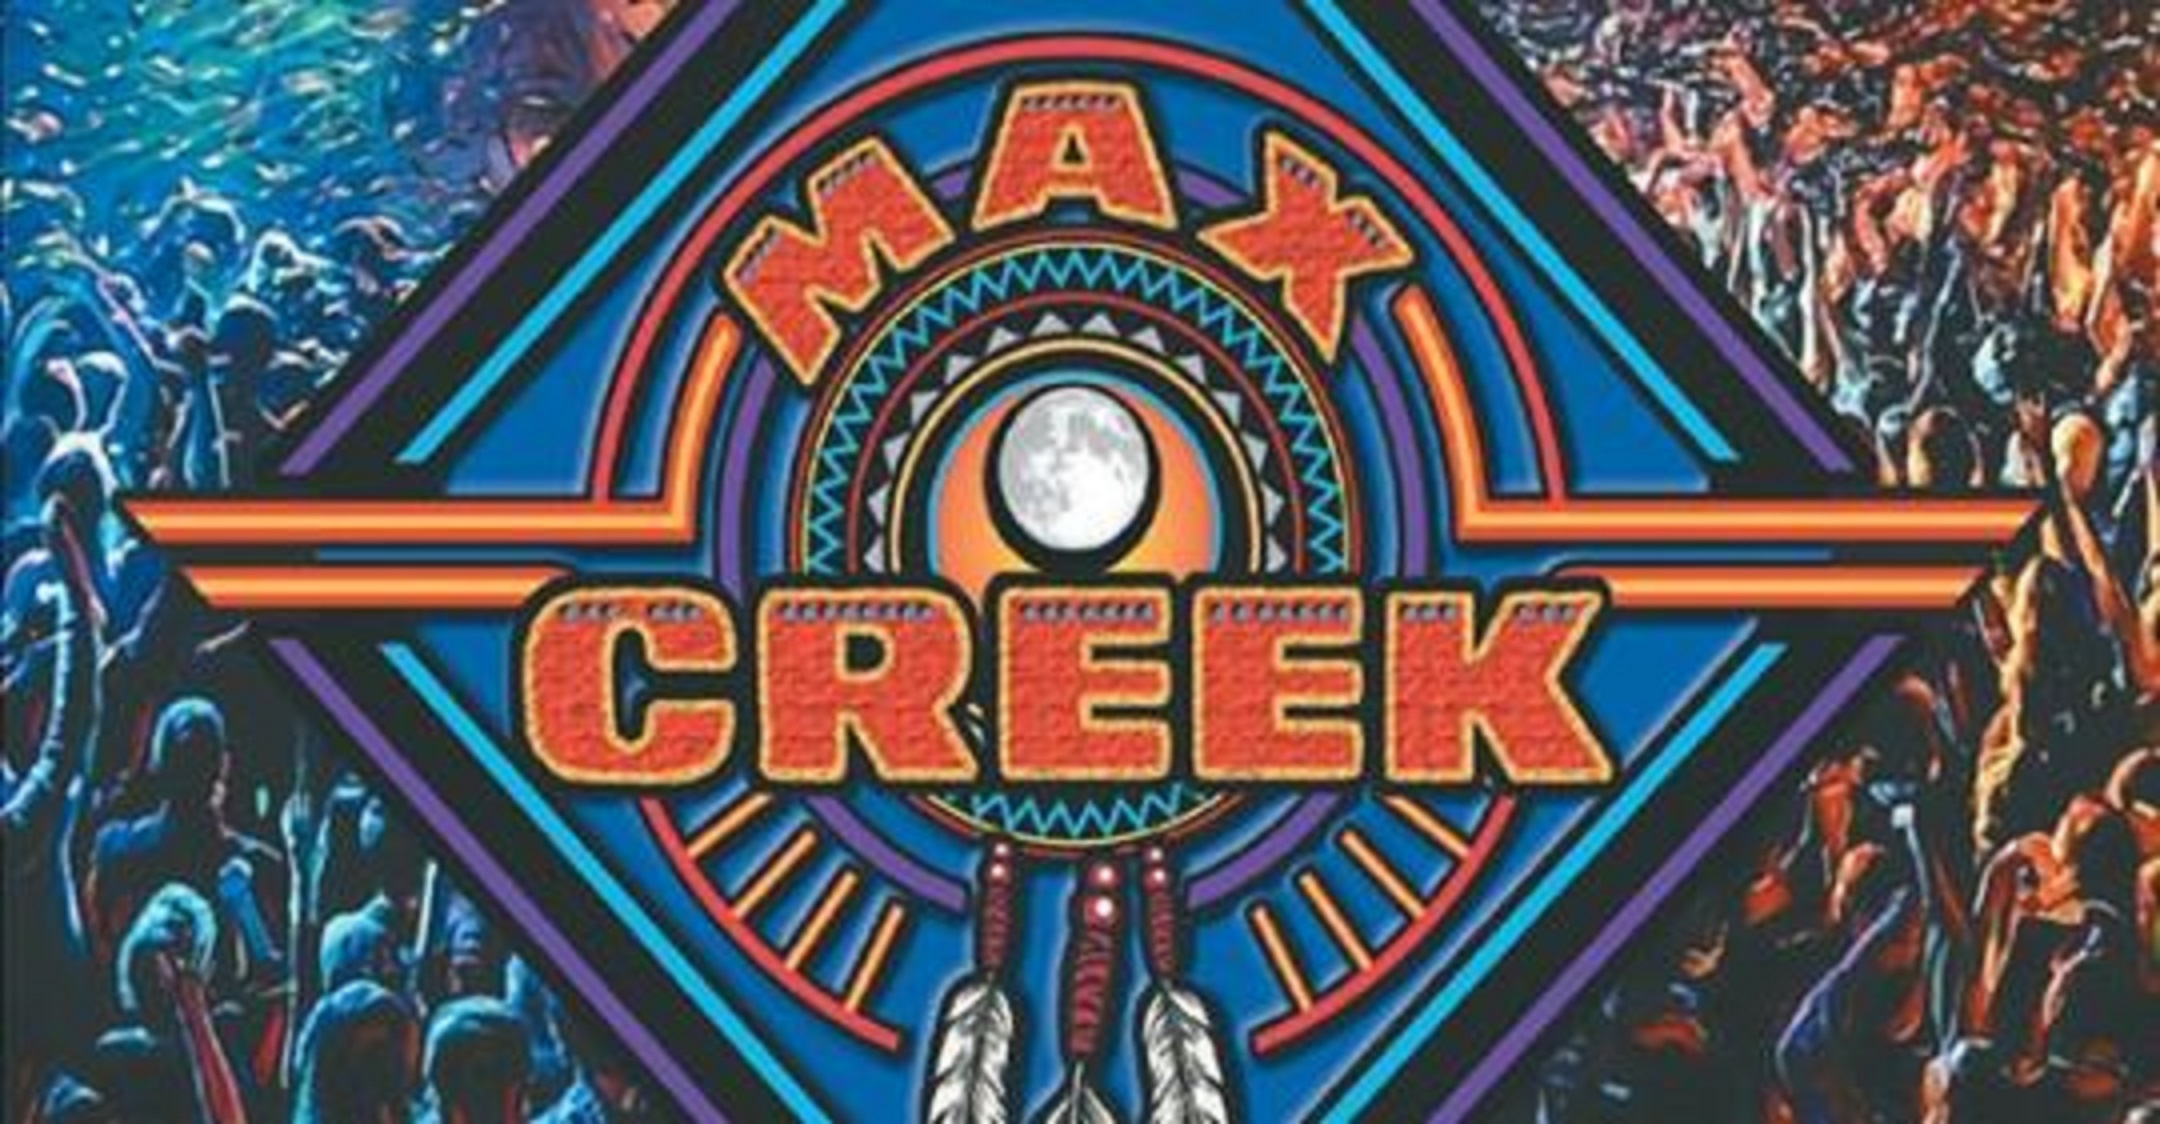 First Max Creek Release since 2000, and you'll be glad they broke the silence